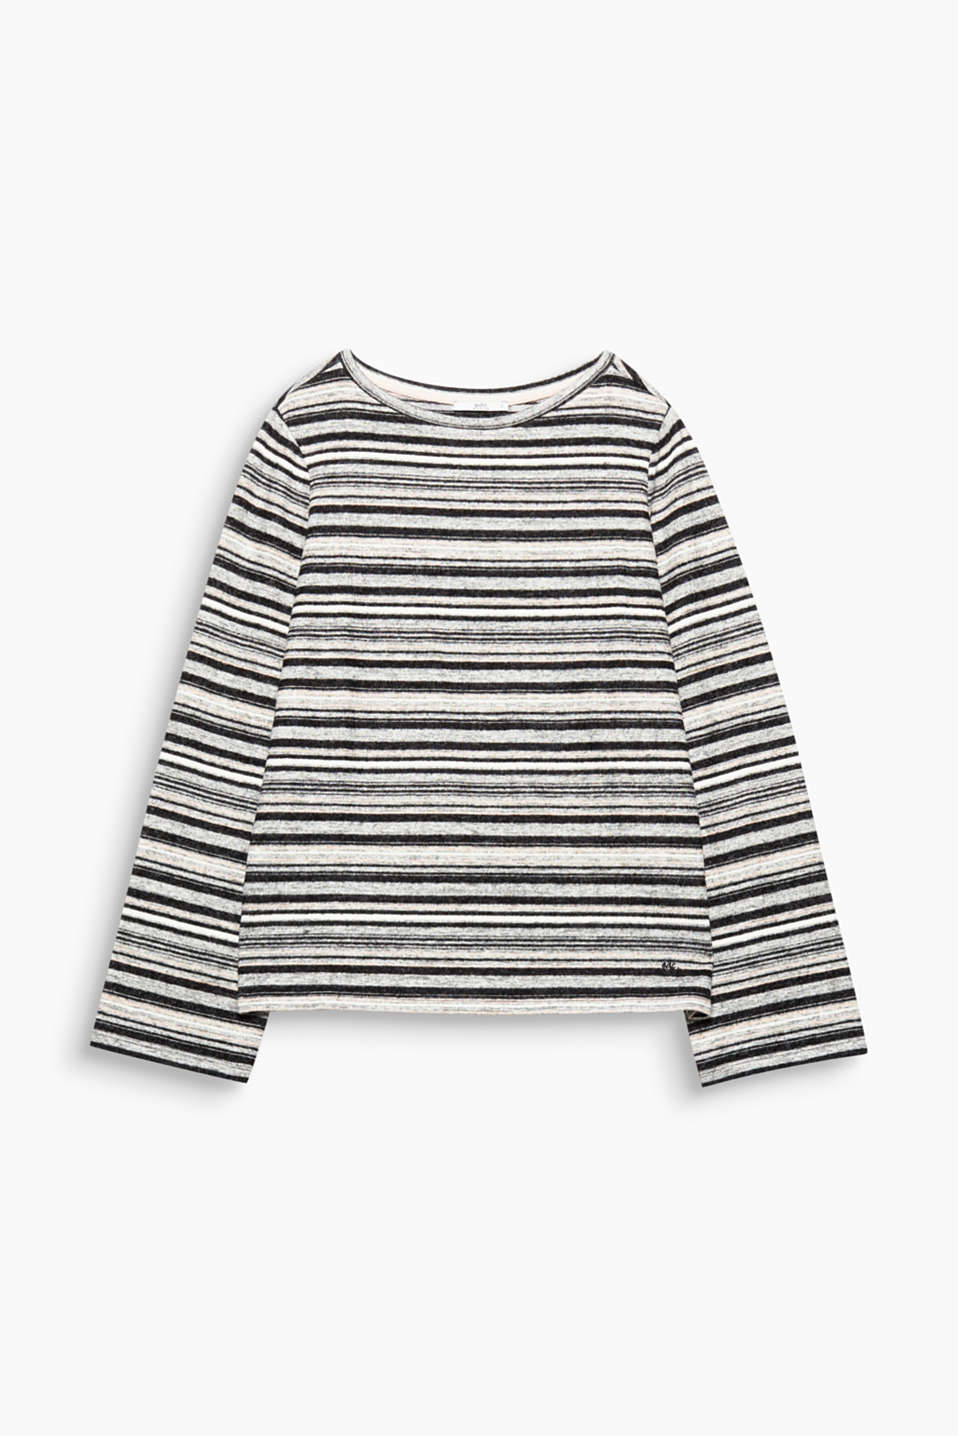 Softly brushed, warming jersey and fine stripes make this relaxed long sleeve top a winter favourite.